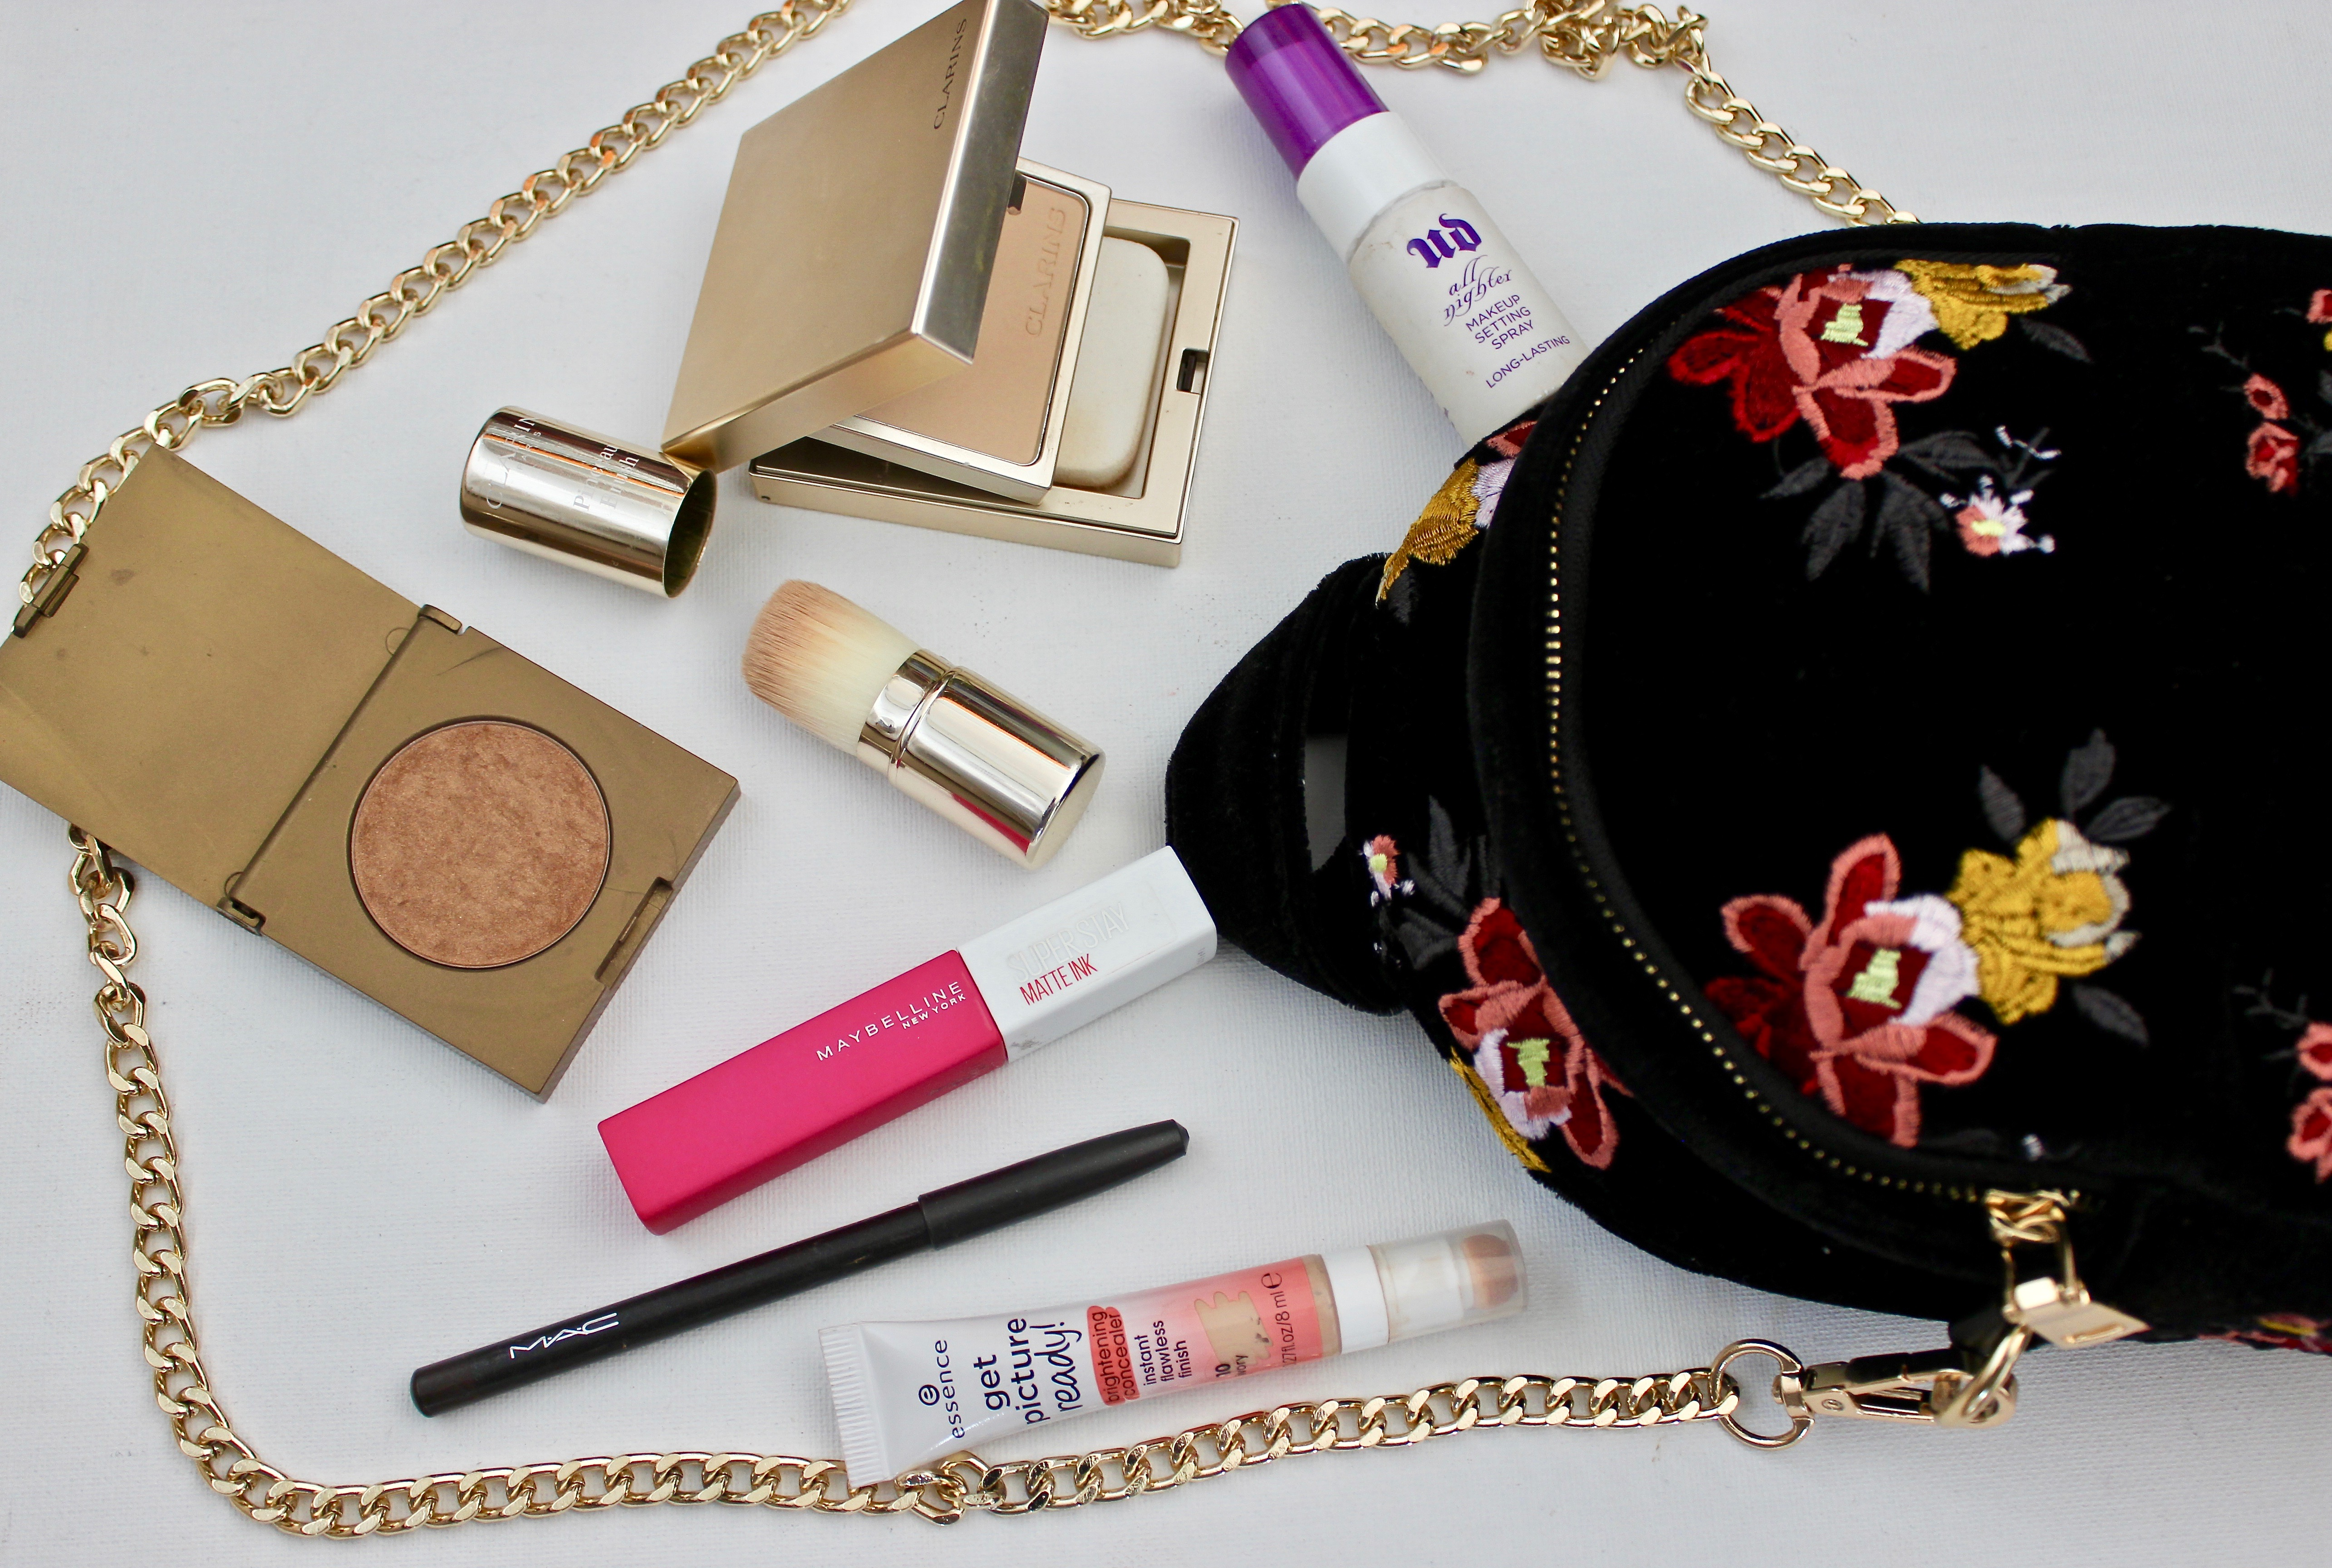 Handbag Makeup Essentials